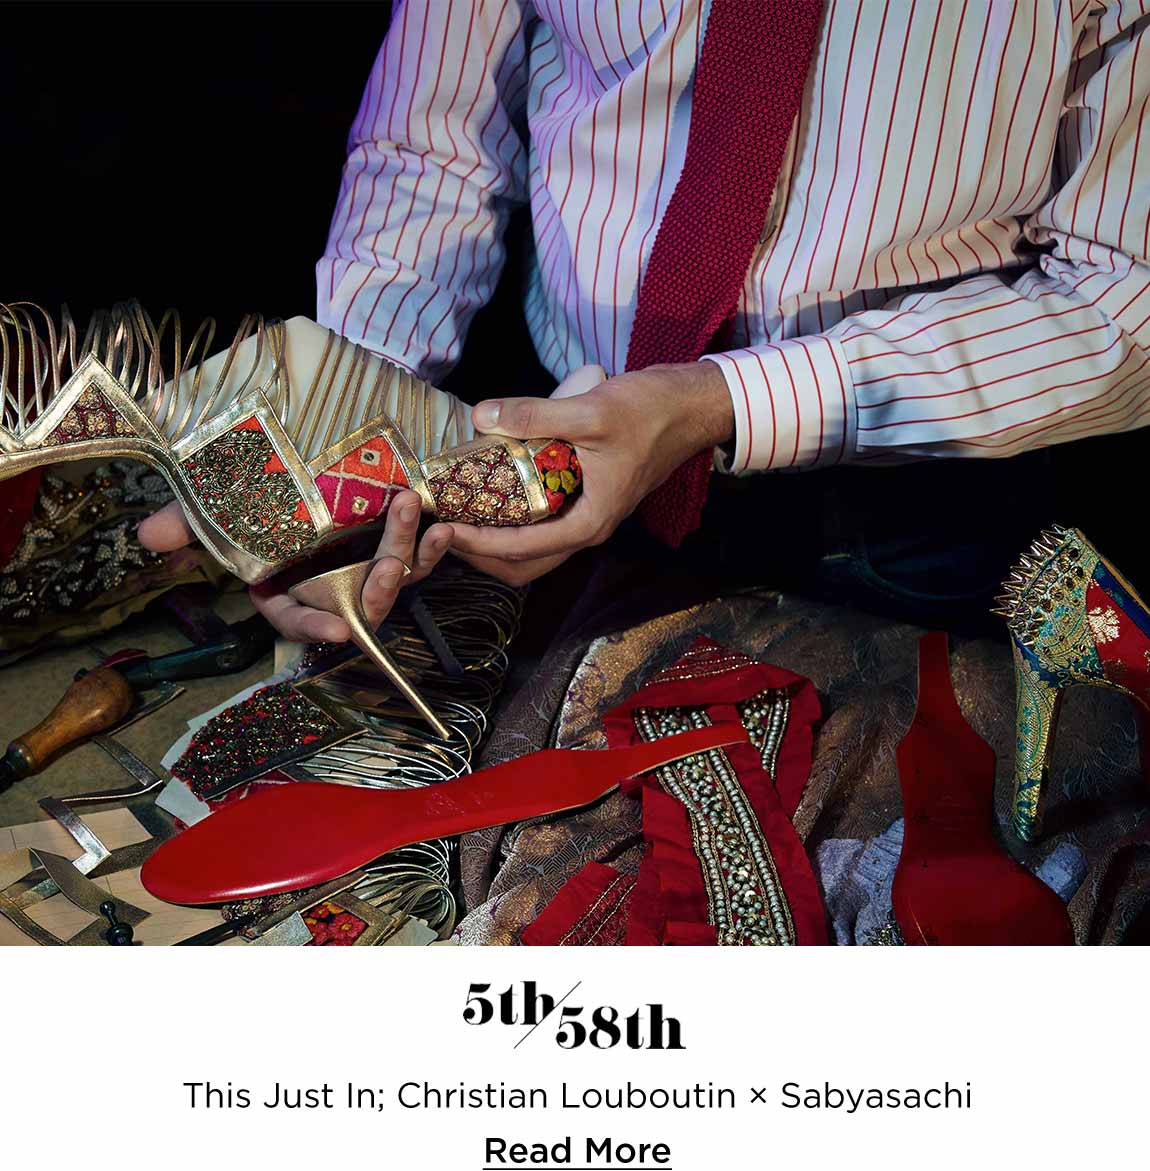 This Just In: Christian Louboutin x Sabyasachi